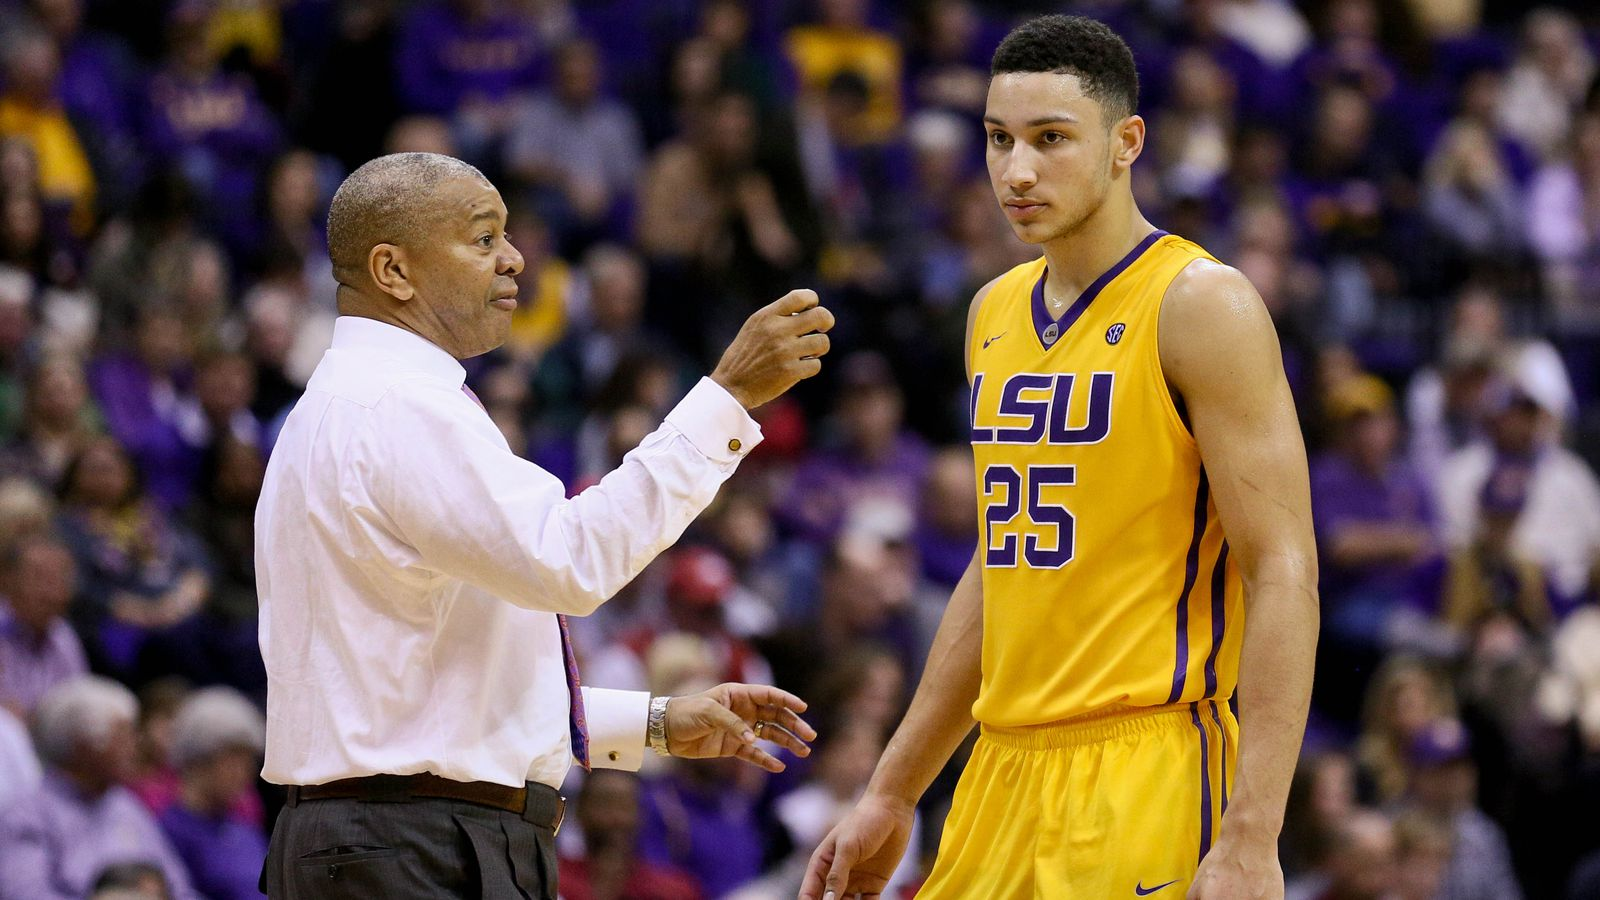 Visit ESPN to view the LSU Tigers team schedule for the current and previous seasons